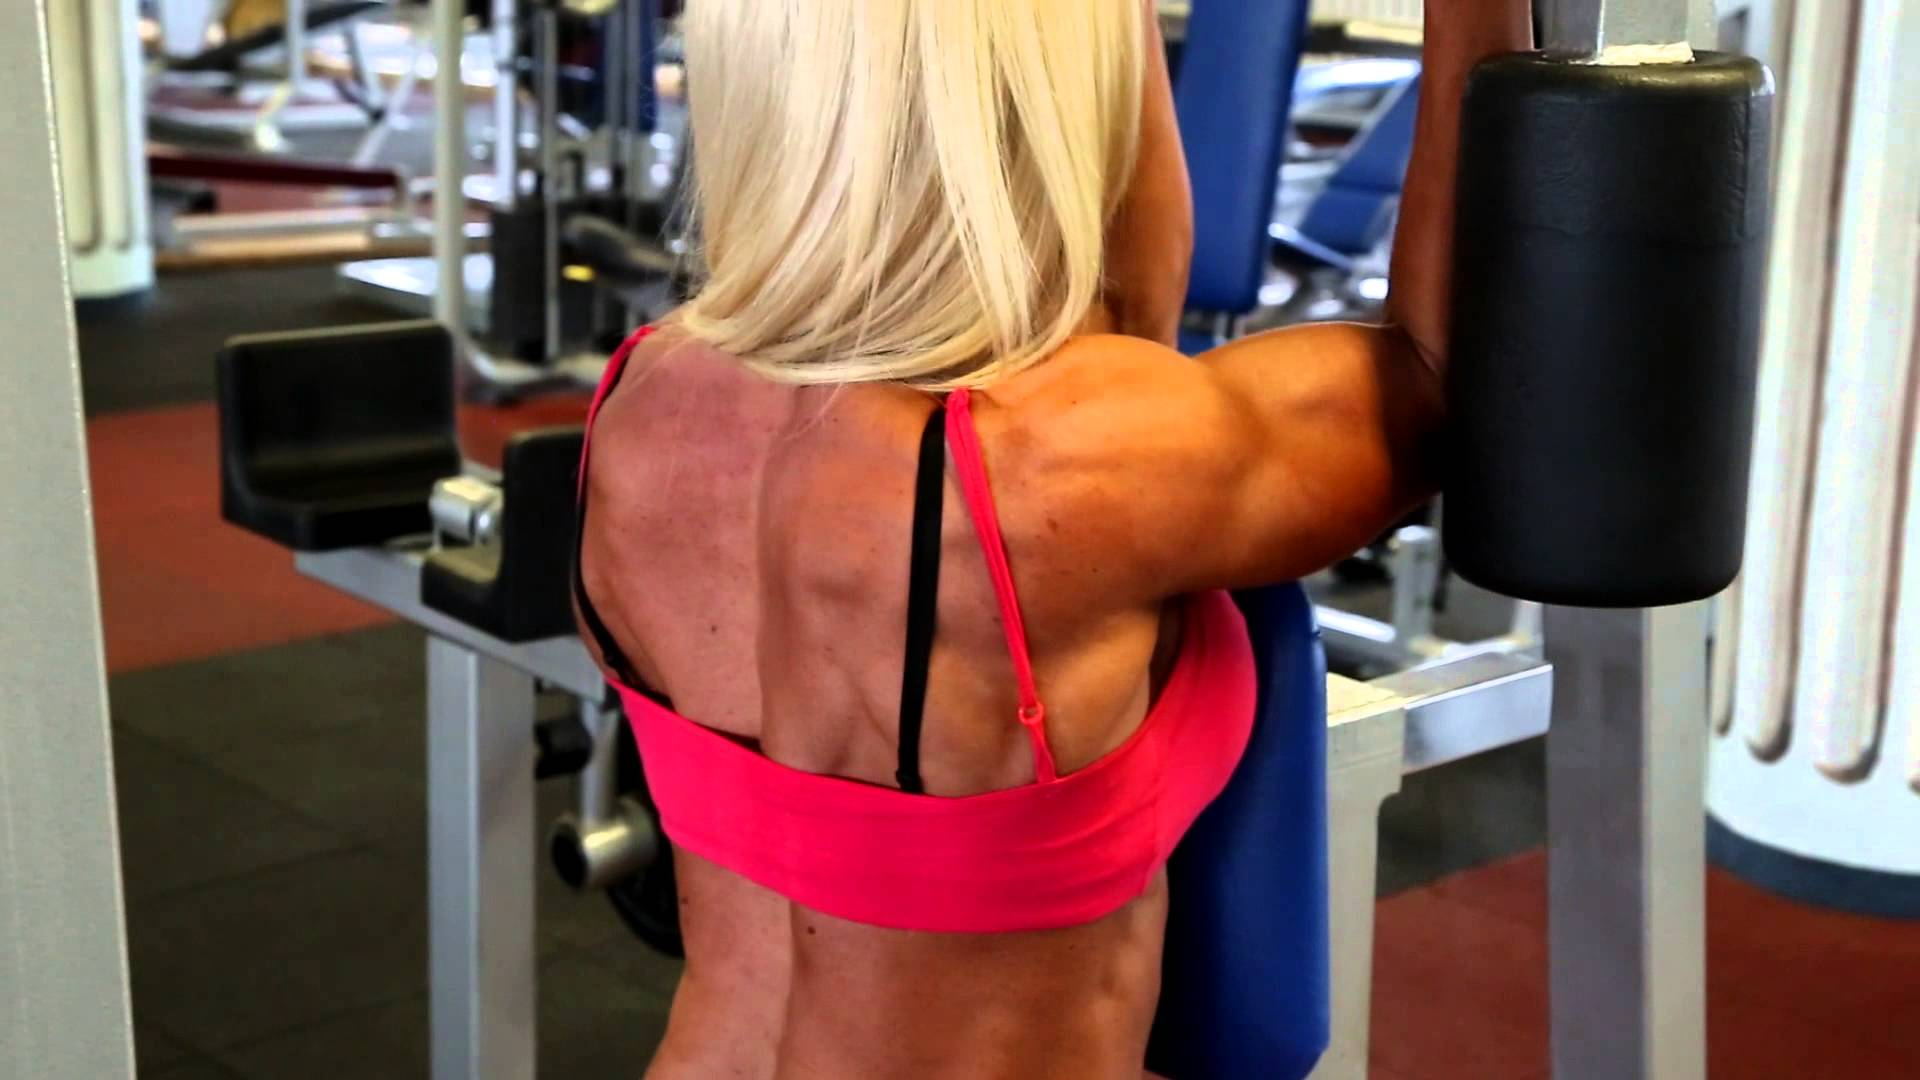 Katalin Jasztrab – Shoulders Workout